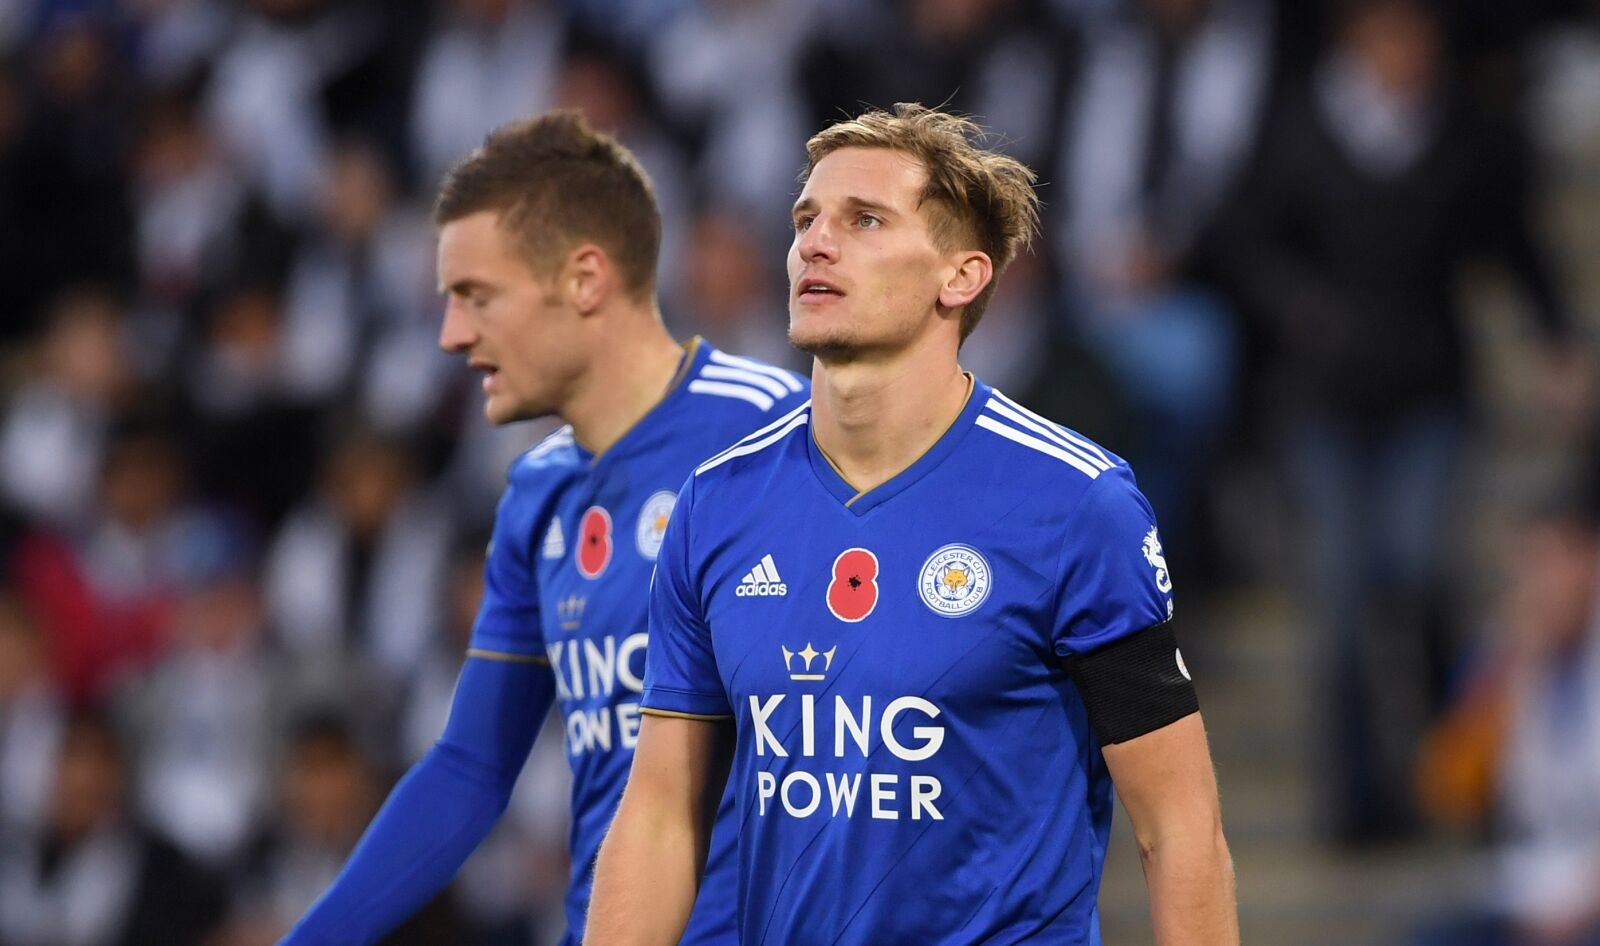 Leicester City's Marc Albrighton during the Premier League match at the King Power Stadium, Leicester. (Photo by Joe Giddens/PA Images via Getty Images)